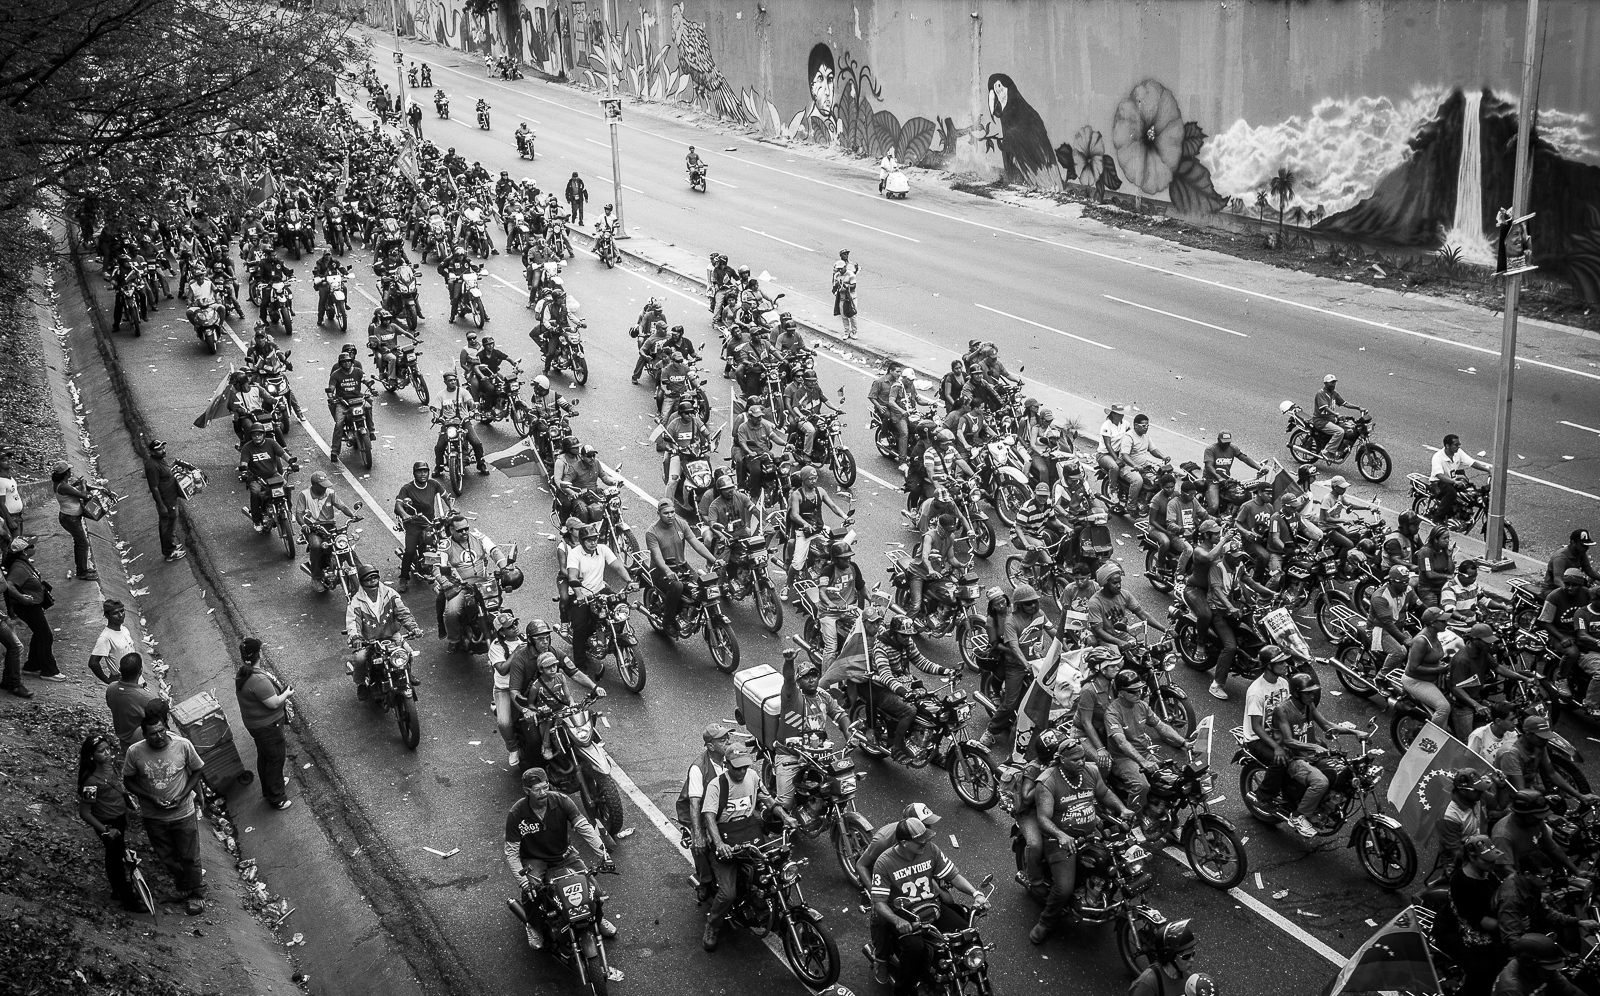 Hundreds of motorbikes chase the official motorcade with Venezuela's President, Hugo Chávez, on a high-way of  Caracas on the 15th March, 2013. The coffin of Venezuela's President, Hugo Chávez, was translated from the Military Academy to the 4th February Military where Chávez remains rest.